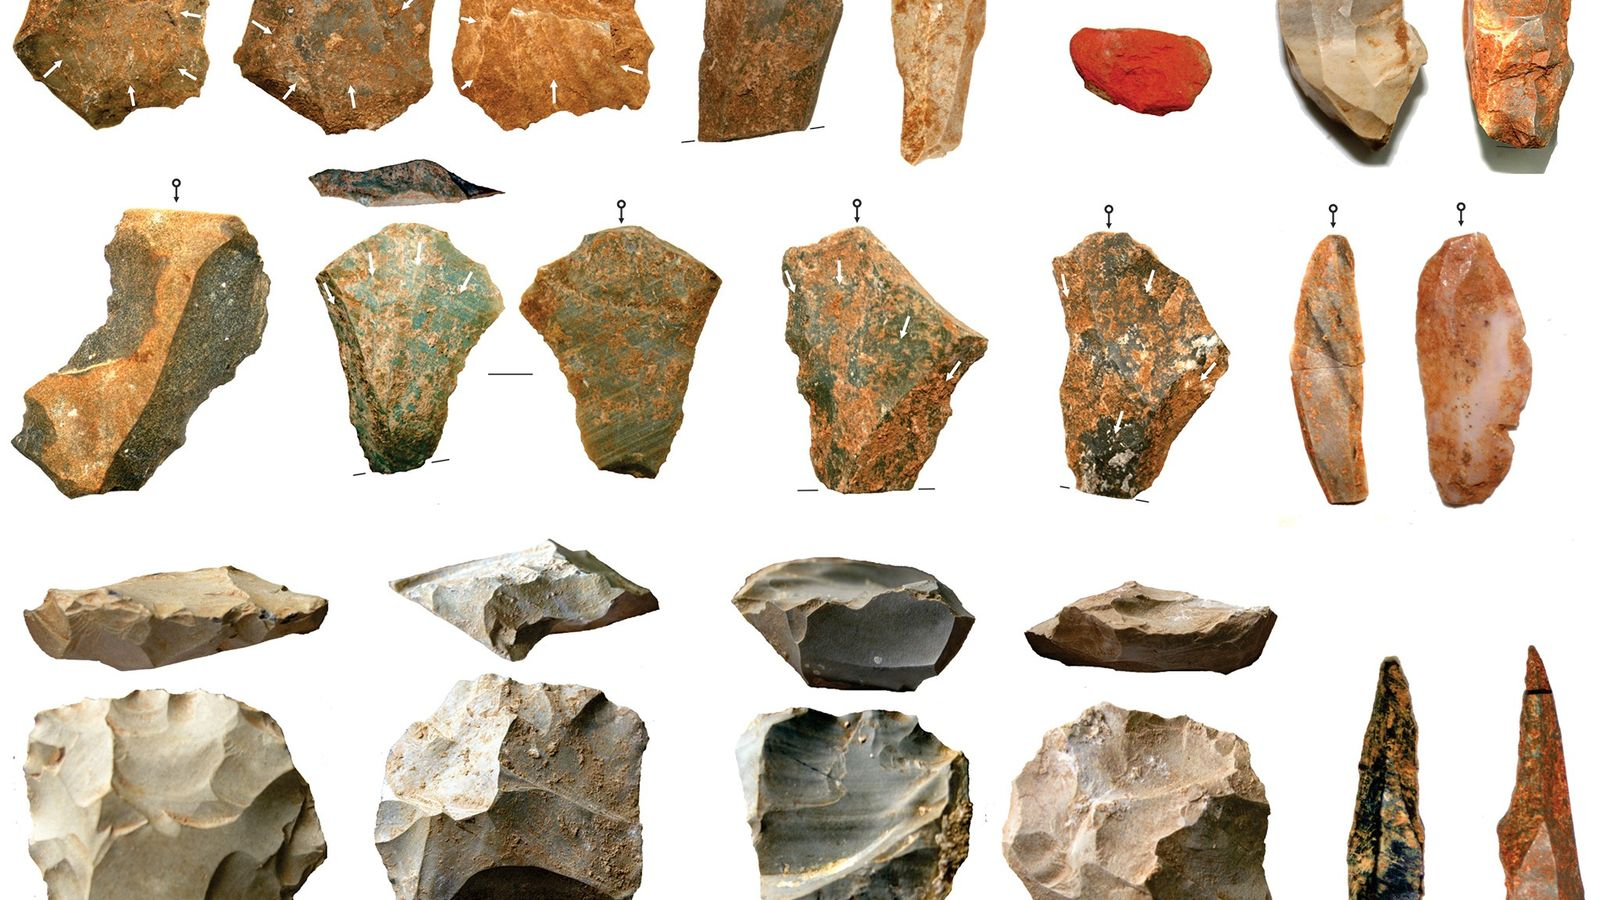 Researchers report a large collection of stone artifacts from archaeological excavations at Dhaba in the Middle ...